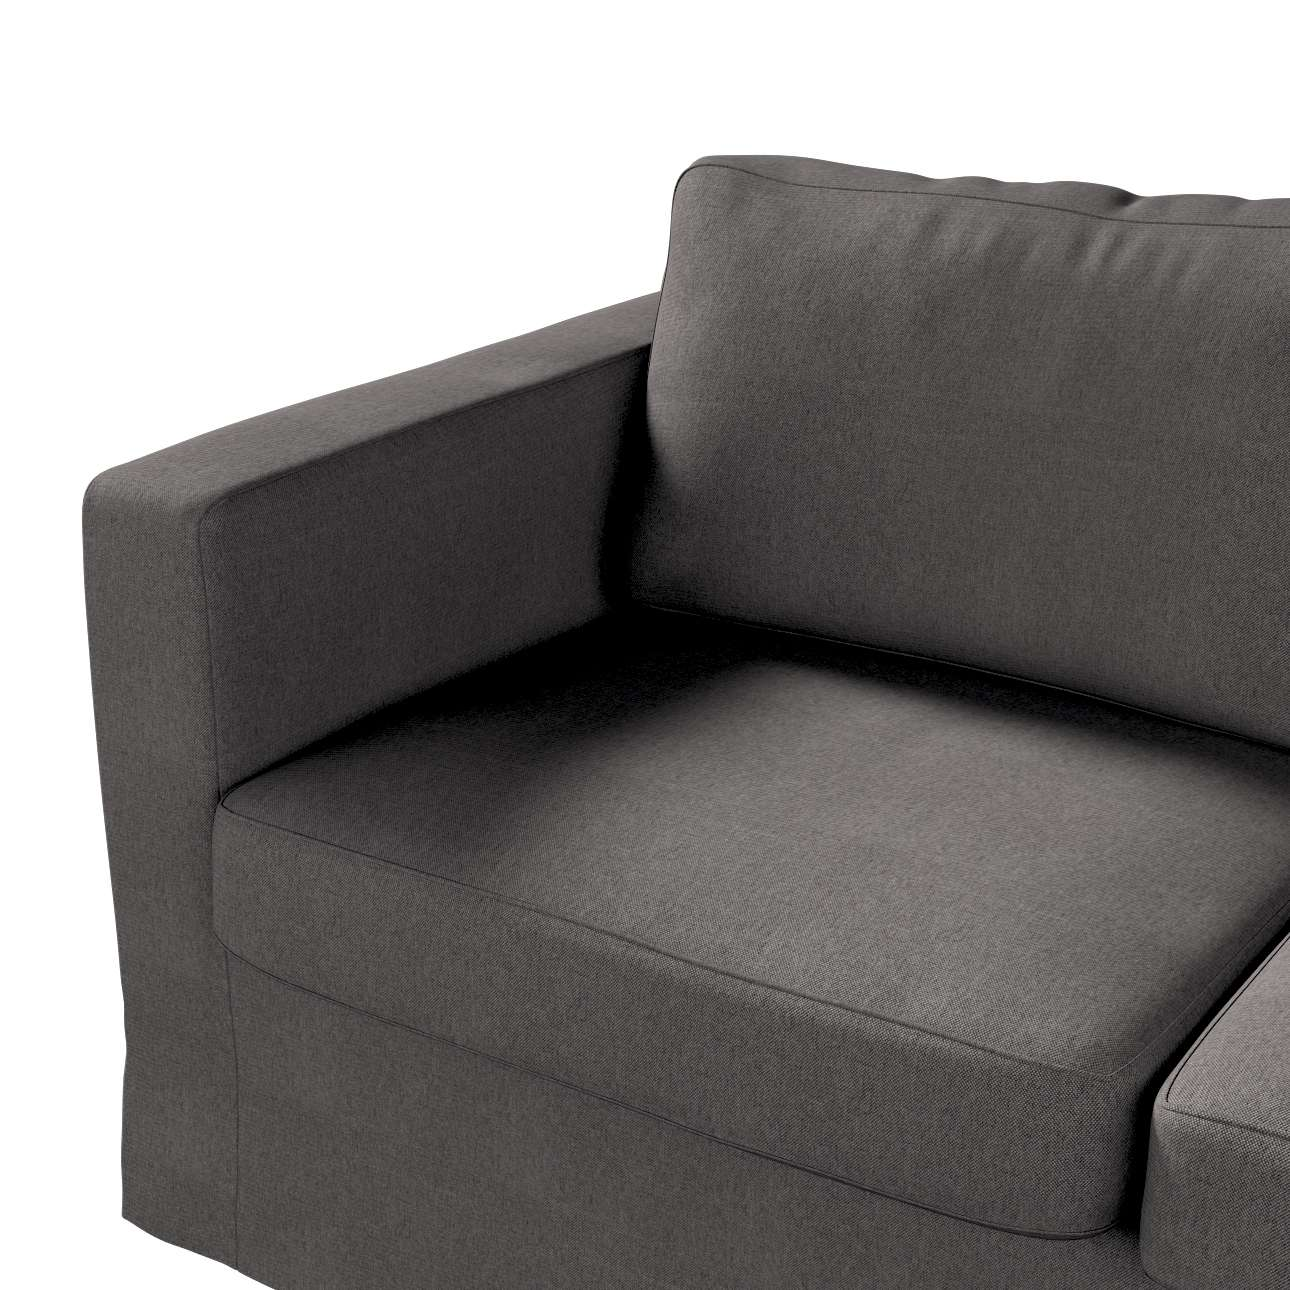 Floor length Karlstad 2-seater sofa cover in collection Etna, fabric: 705-35